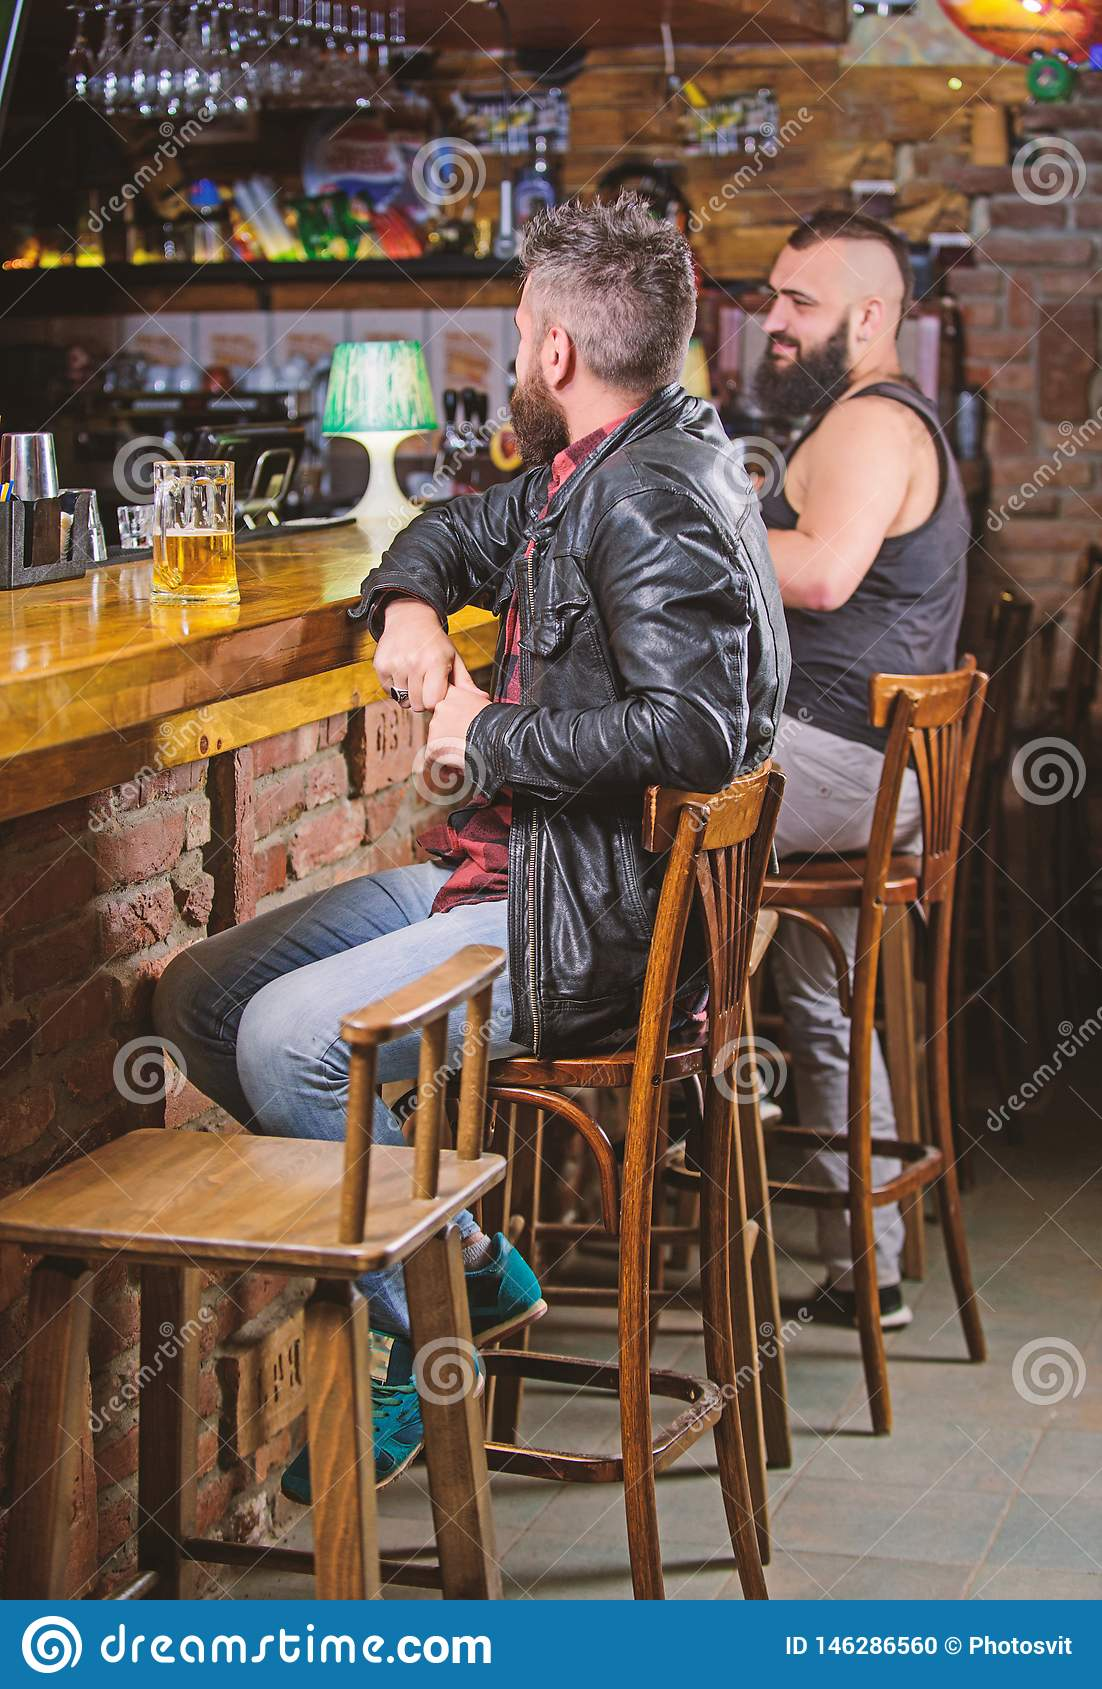 Peachy Weekend Lifestyle Guy Bearded Man Sit At Bar Counter In Pub Pub Natural Hairstyles Runnerswayorg